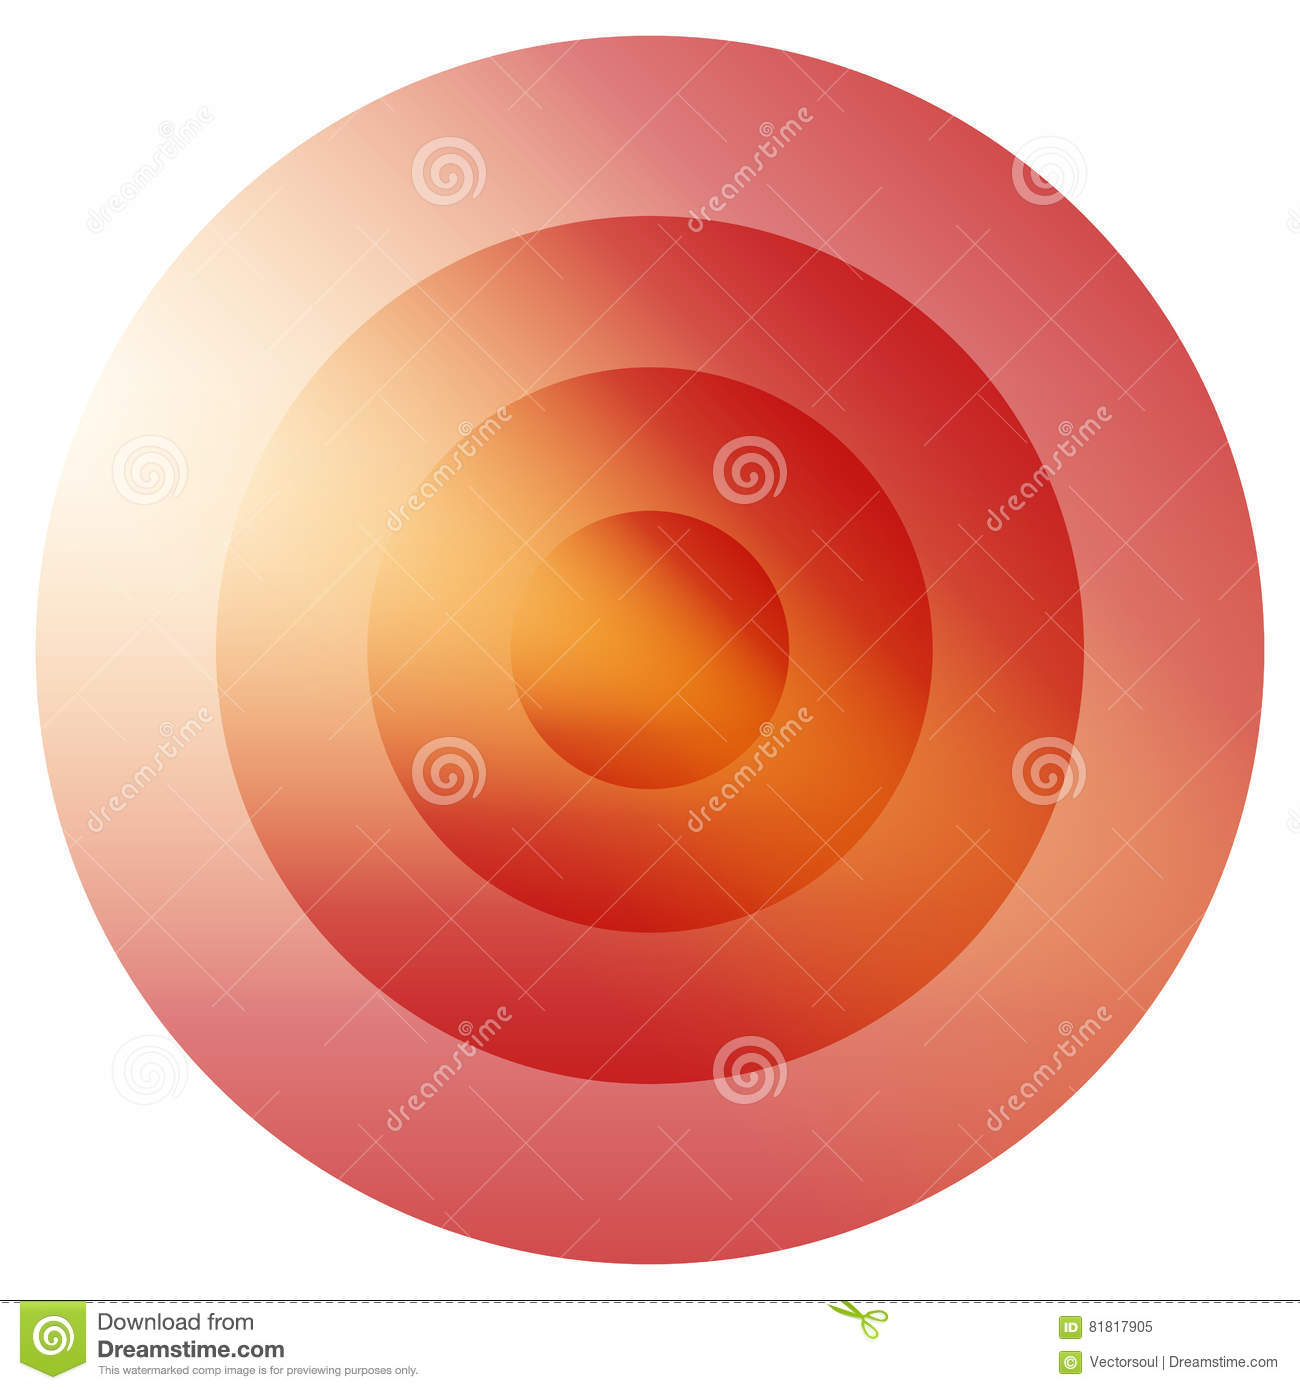 Glassy colorful radiating, concentric circles element. Glowing b